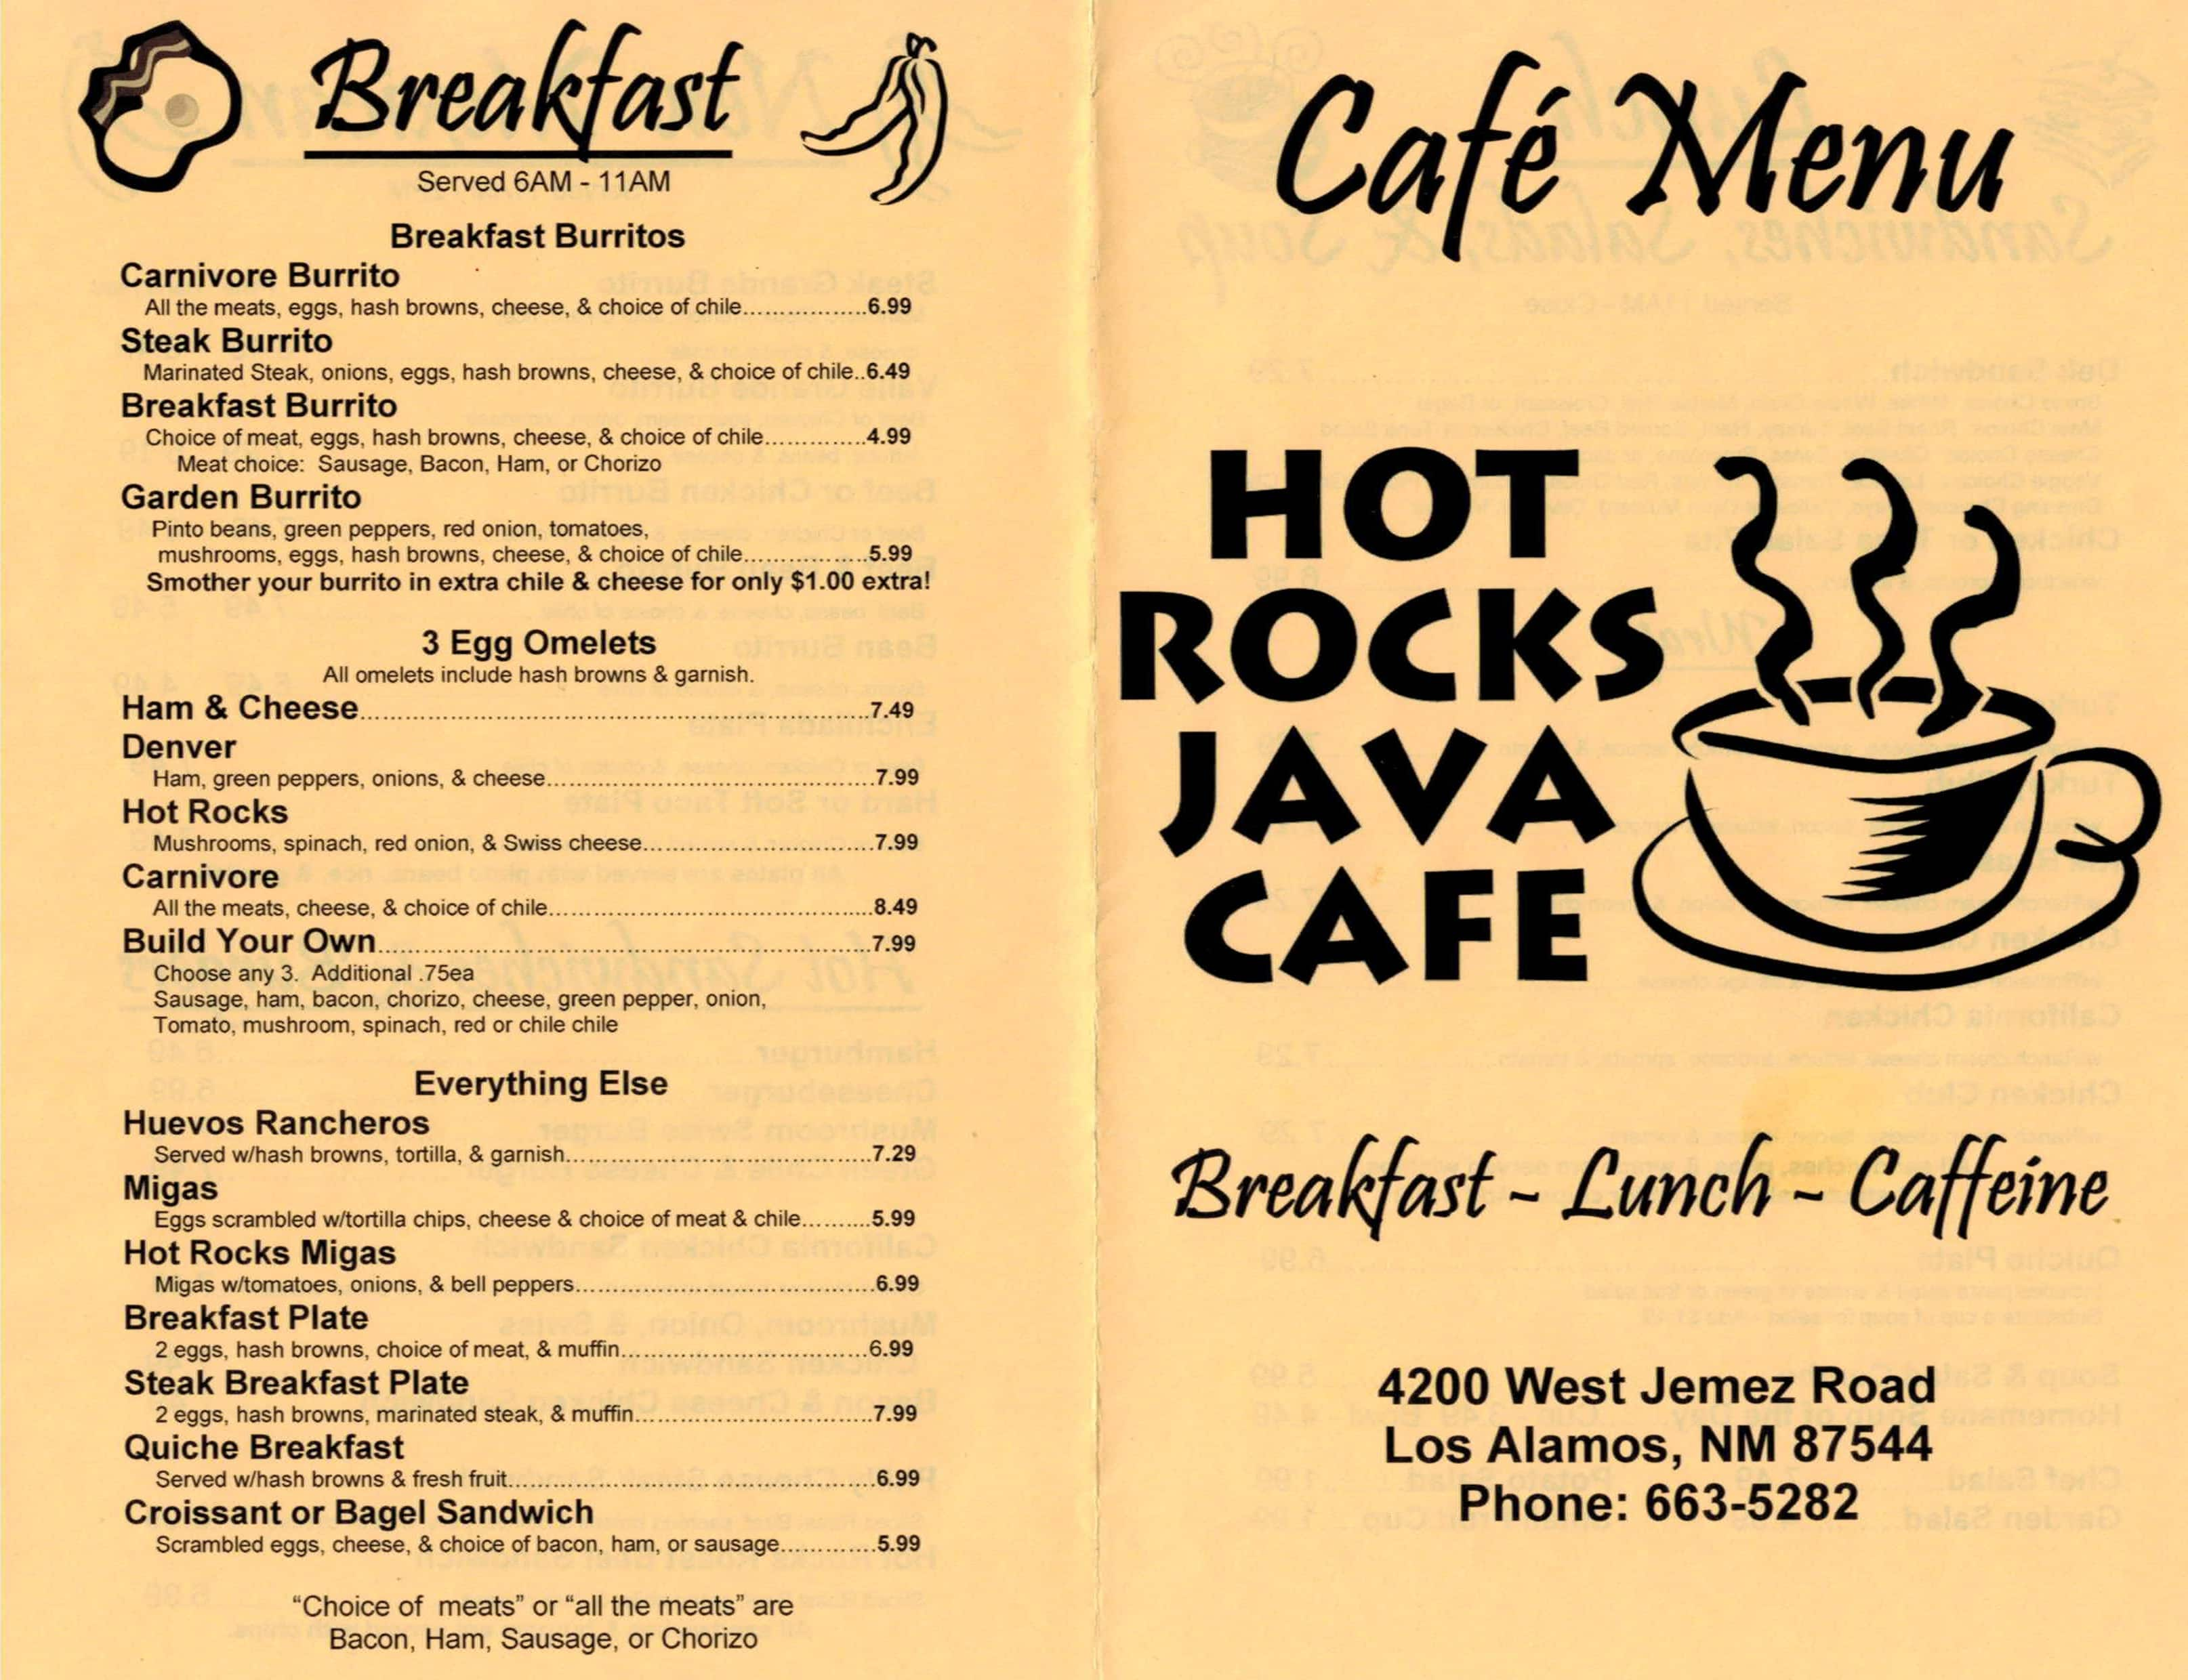 Hot Rocks Java Cafe